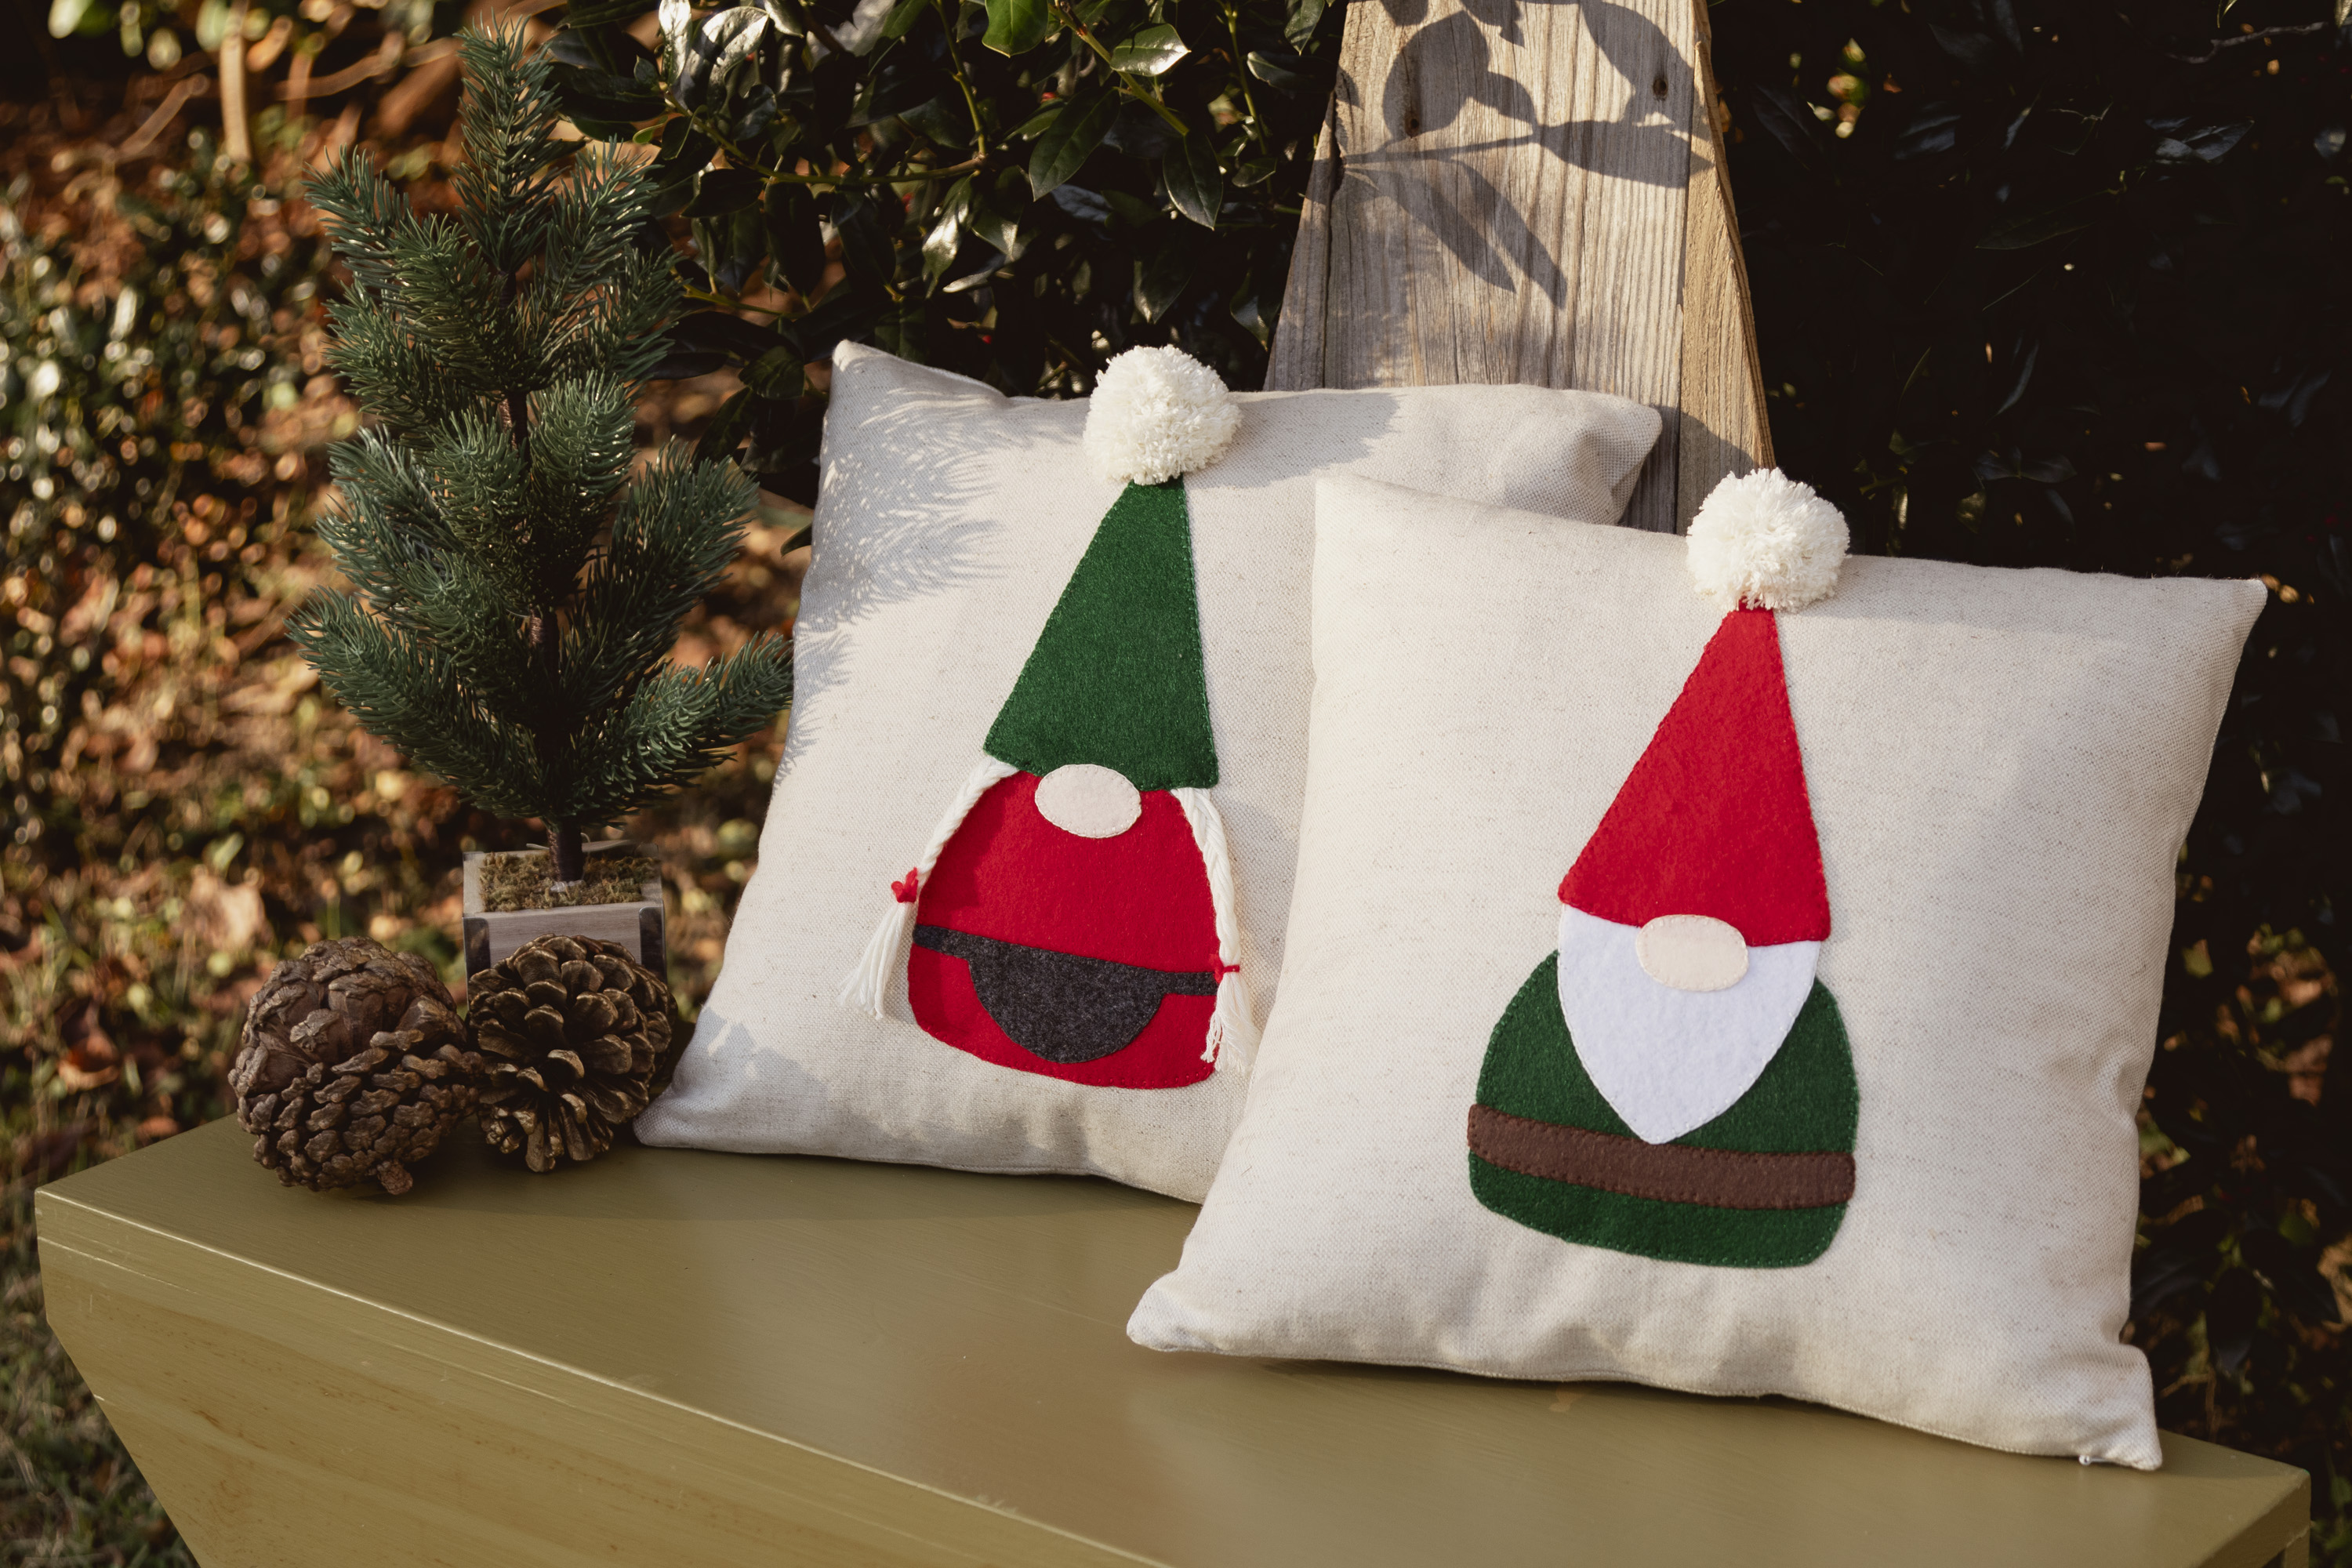 Gnome applique pillows